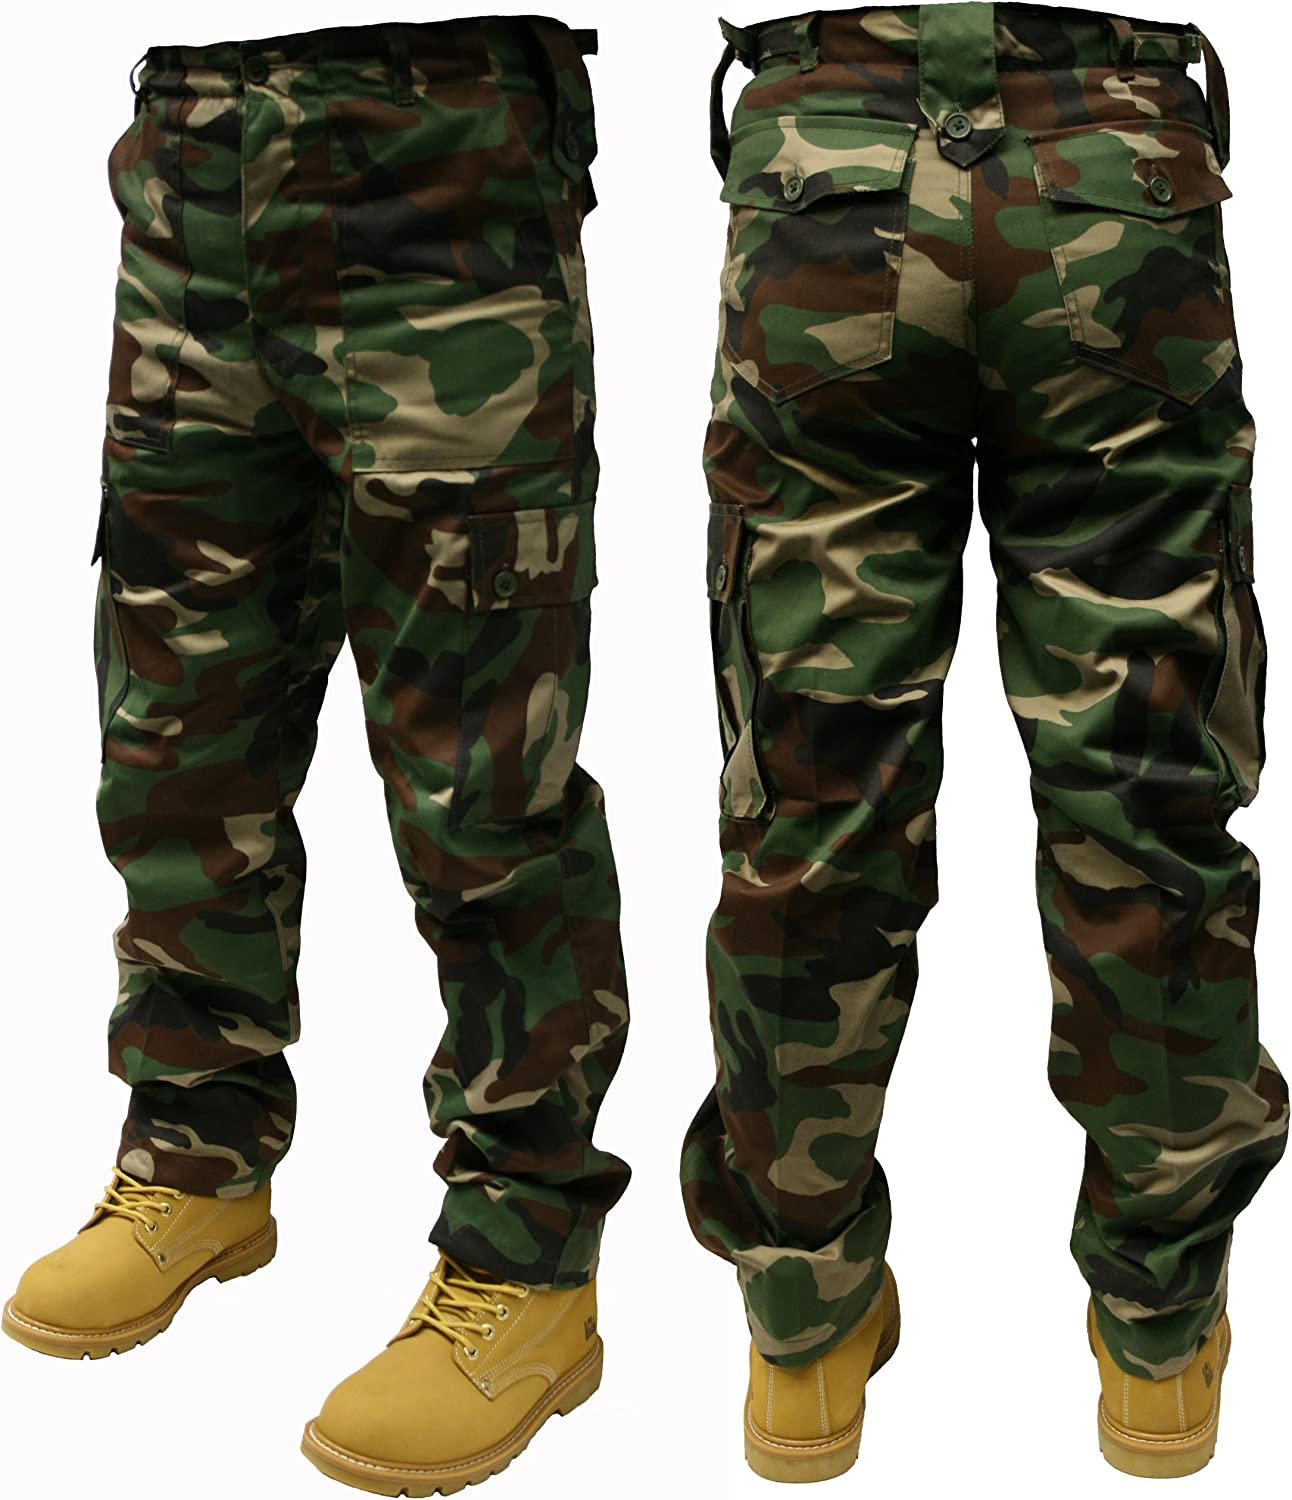 12 Different CAMO Patterns Dallaswear Adults Camo Army Cargo Combat Trousers 30-50 Must See!